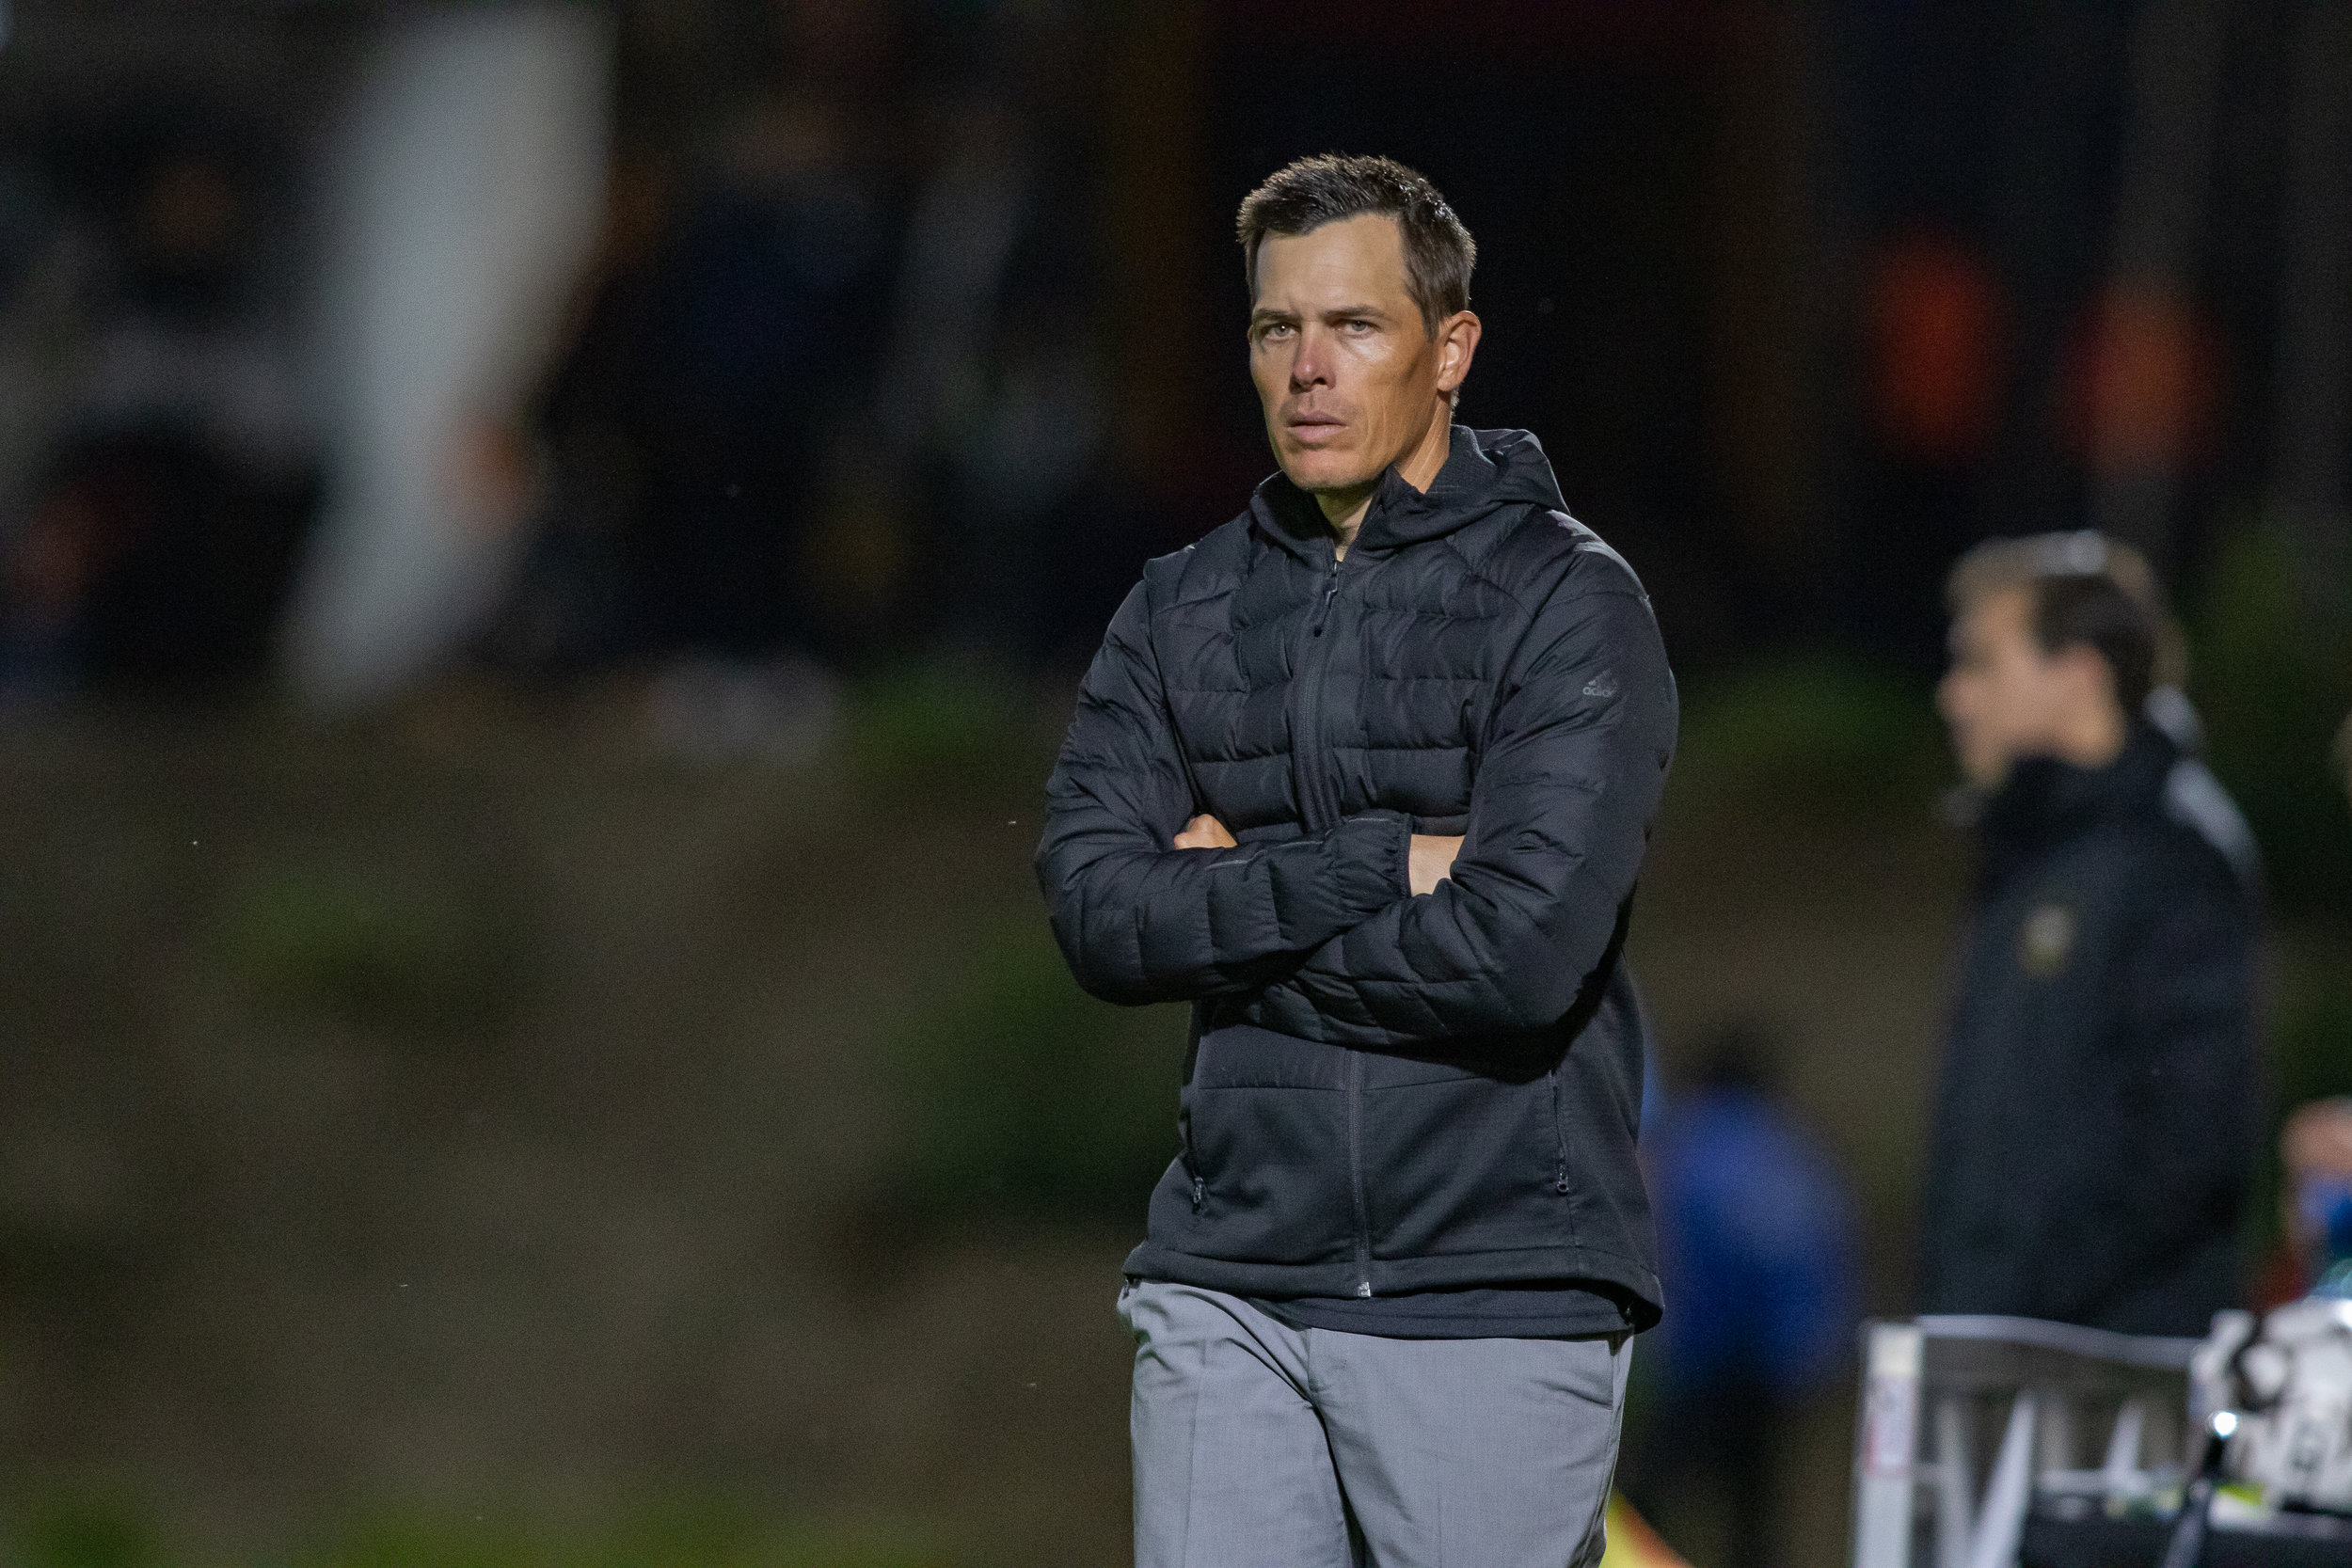 Orange County SC head coach Braeden Cloutier.  |   Photo courtesy of Orange County SC/Liza Rosales